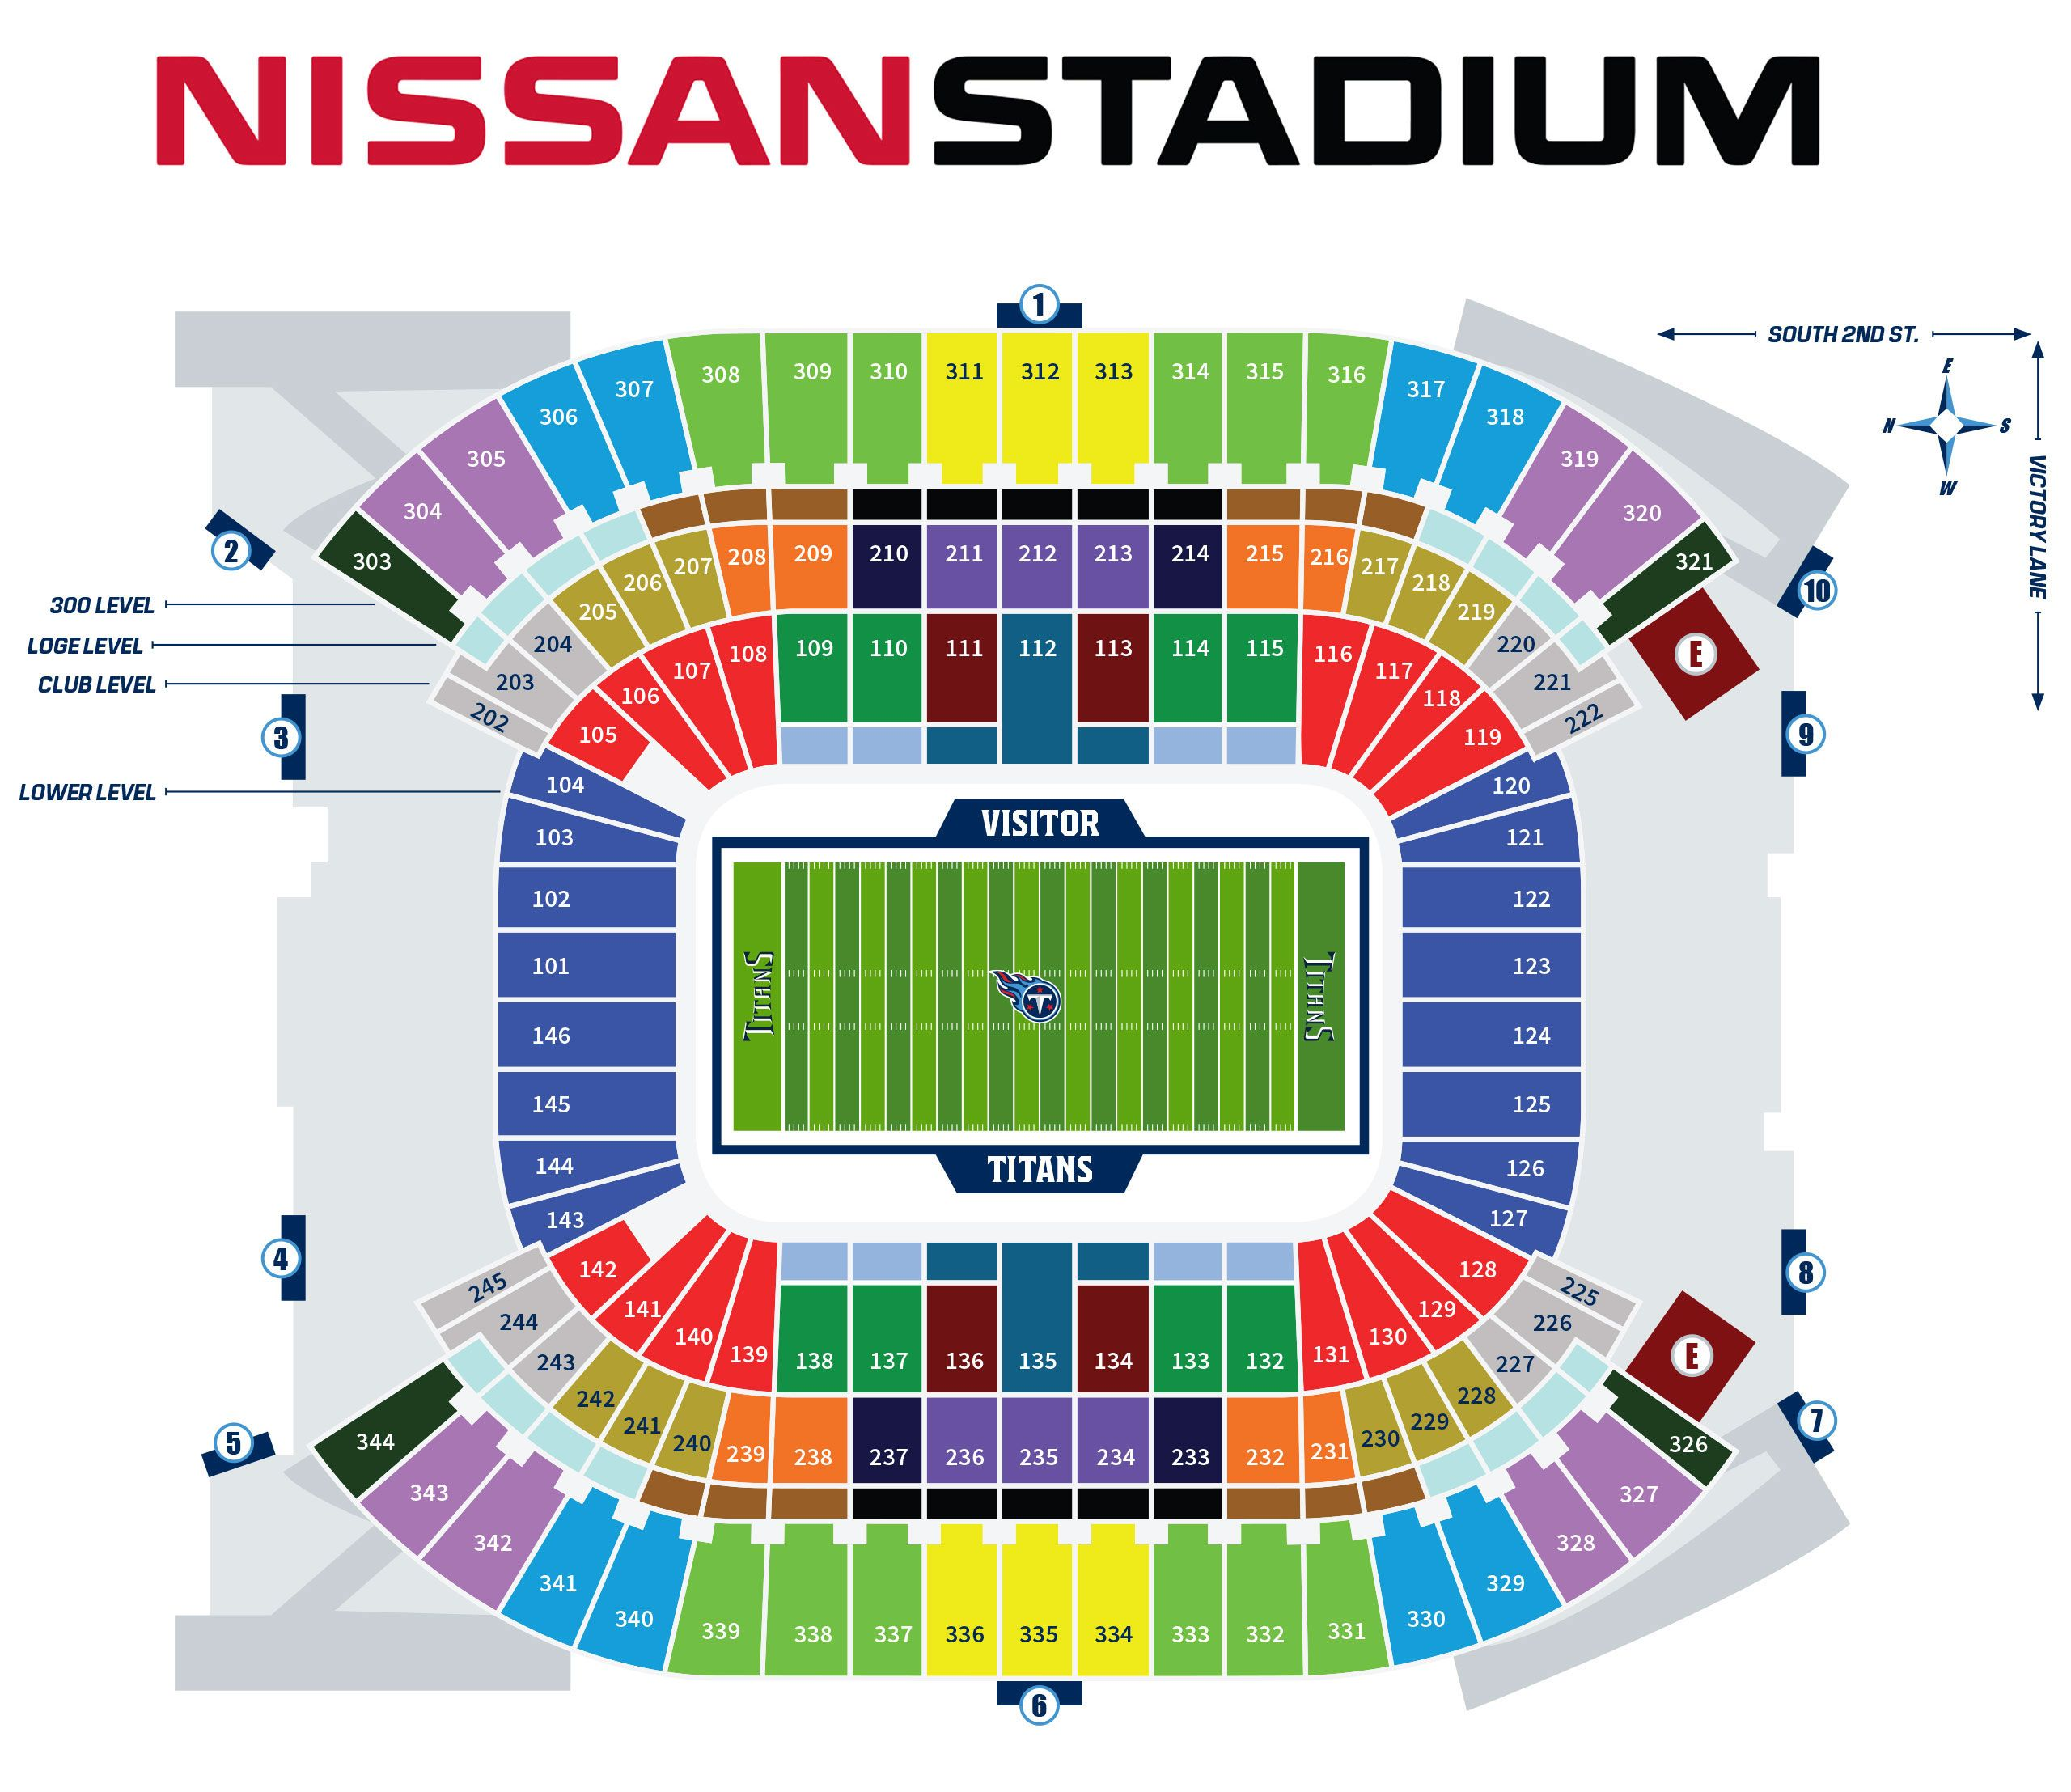 Nissan Stadium Seating Guide